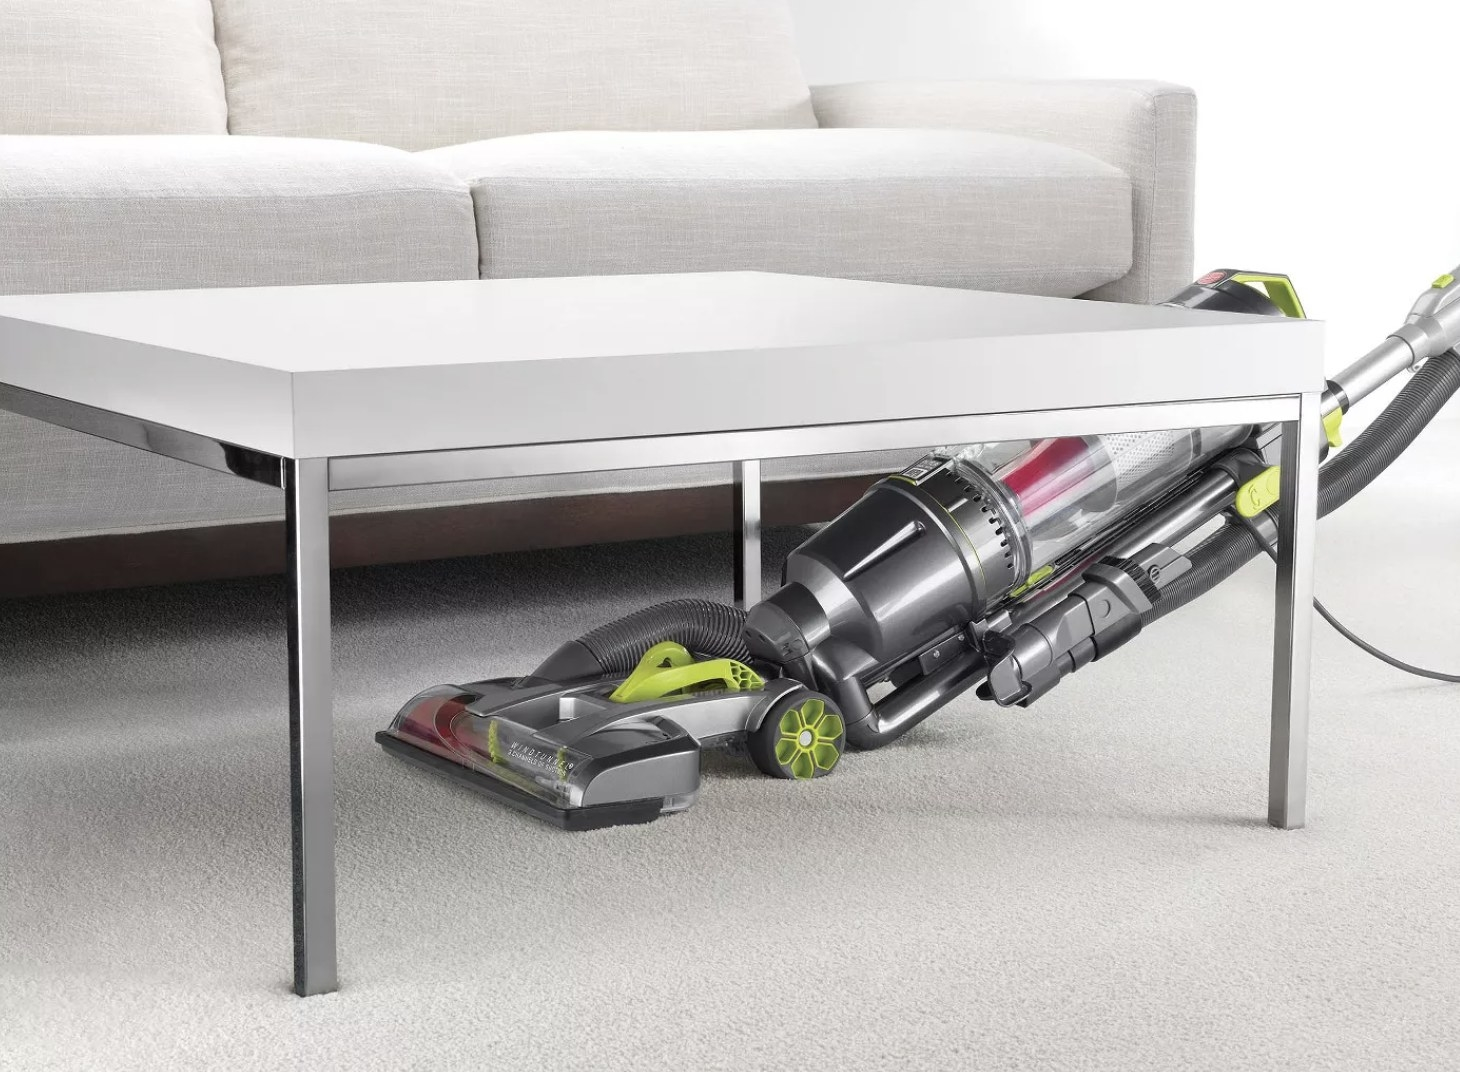 The vacuum under a coffee table vacuuming